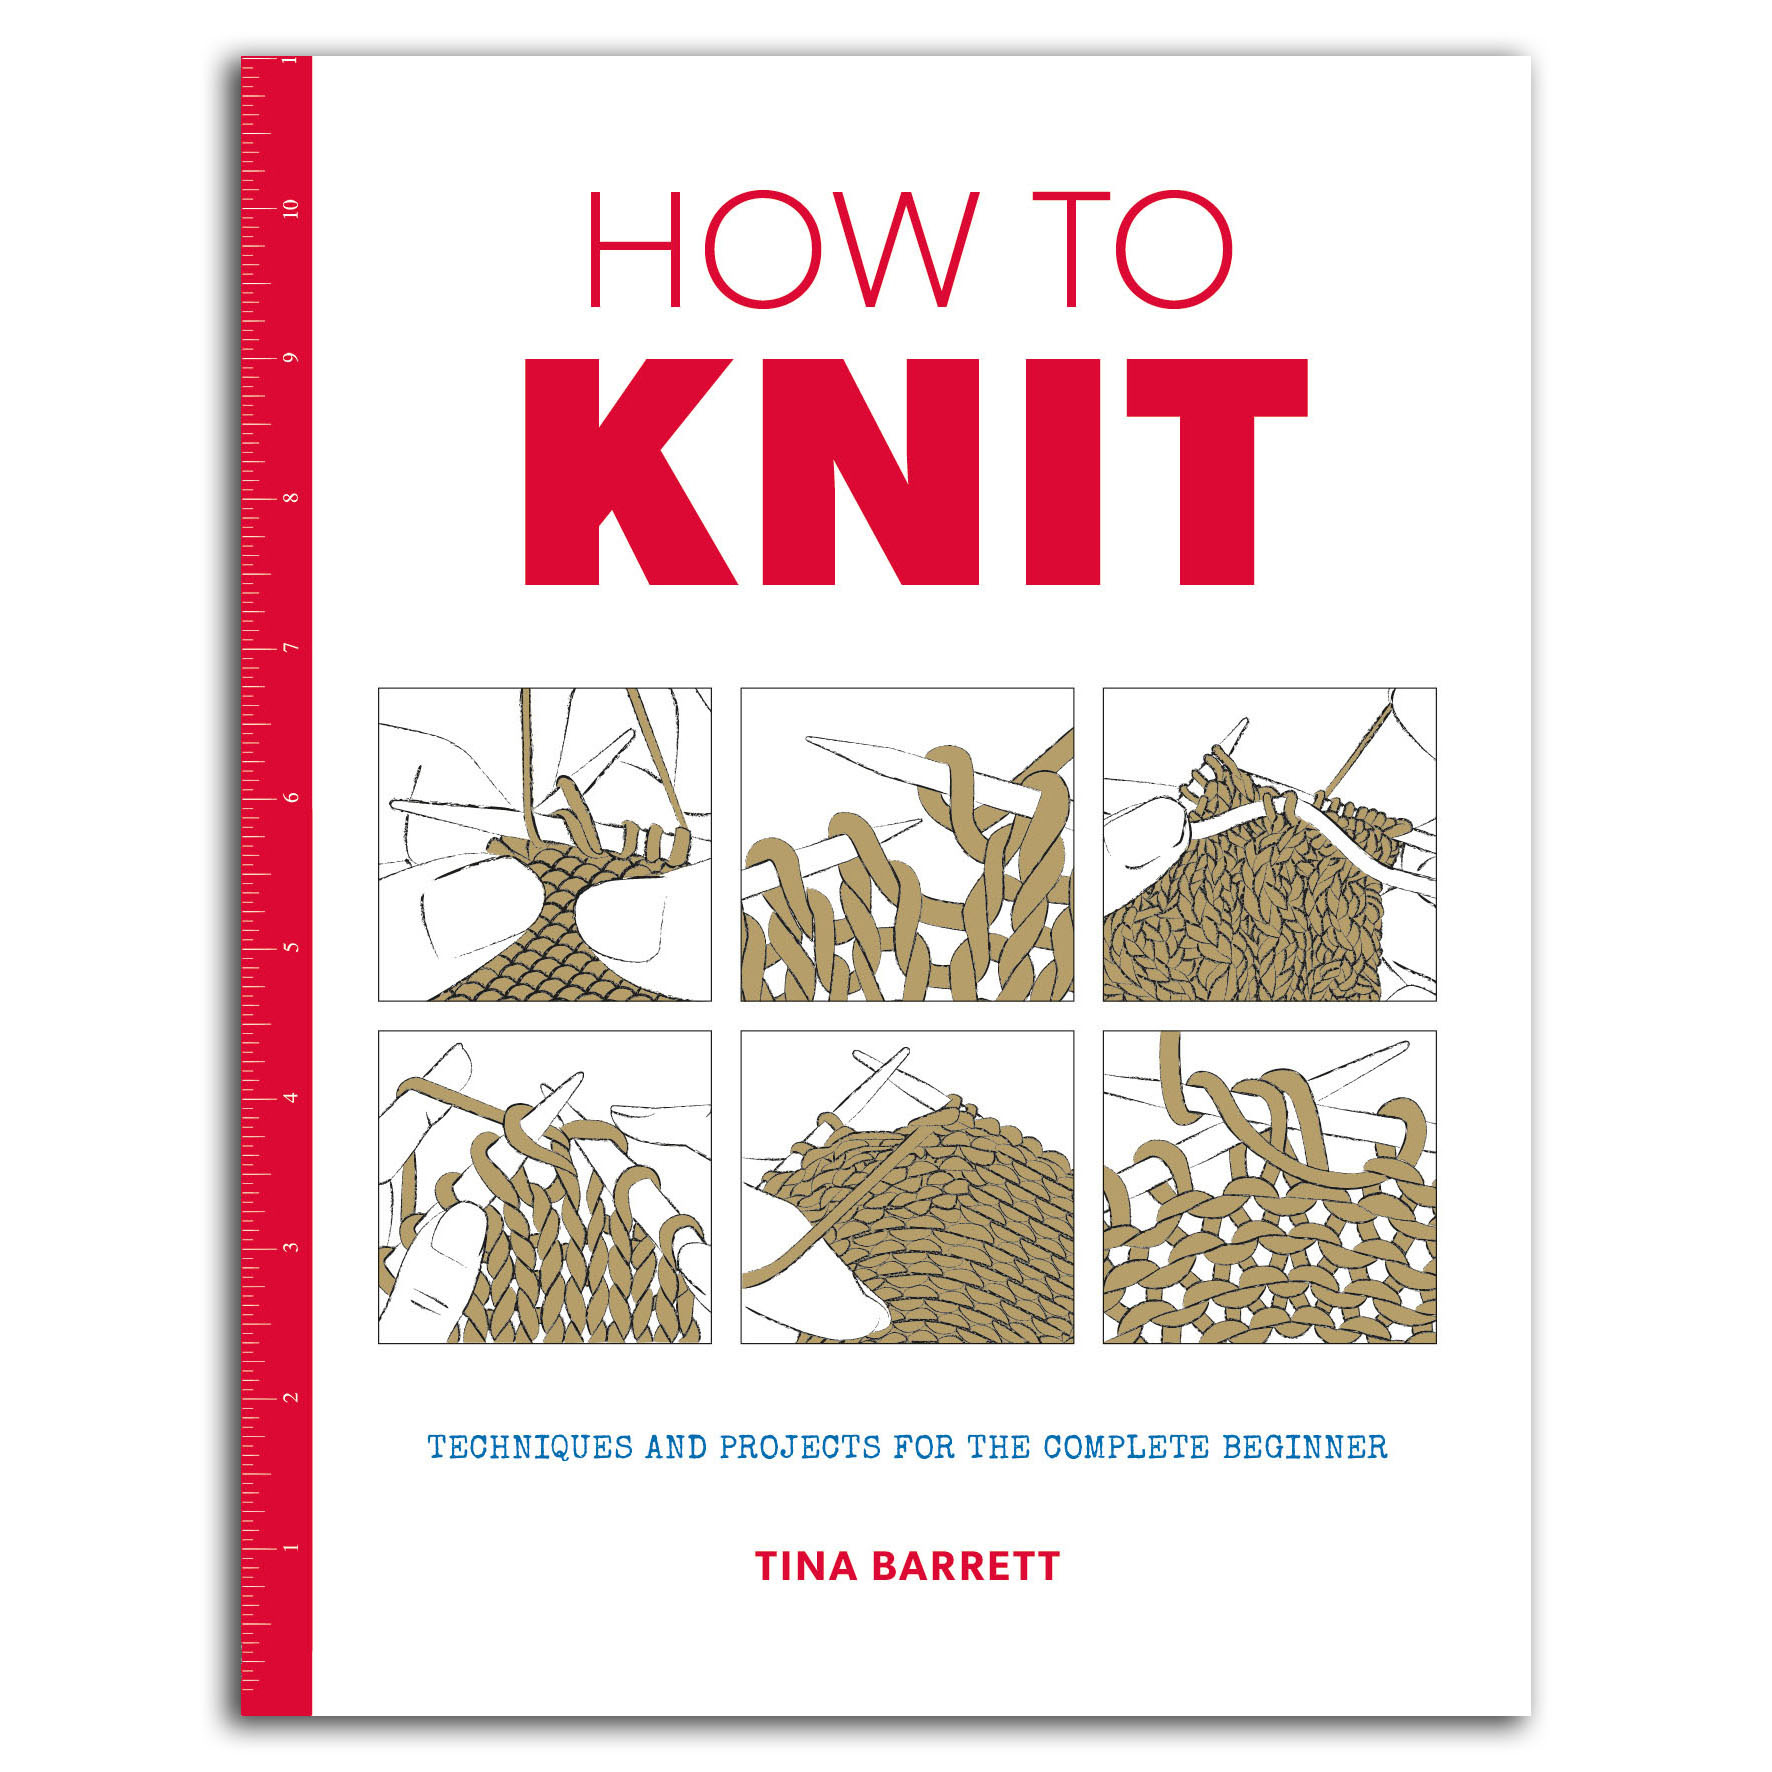 HOW TO KNIT by TINA BARRETT (large format)